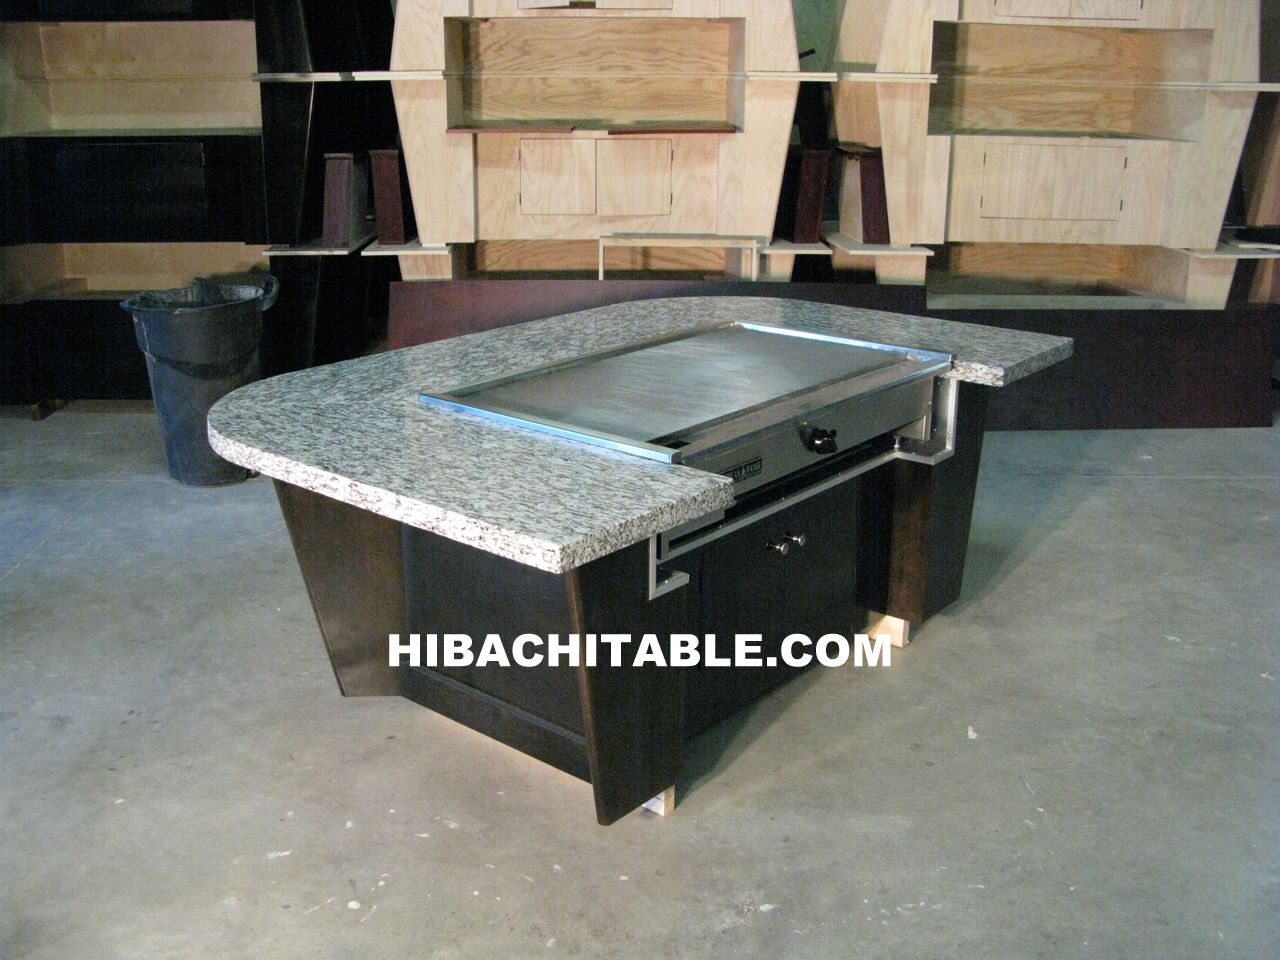 Hibachi Grills For The Home Gallery Table Teppanyaki Teppan Sushi Bar